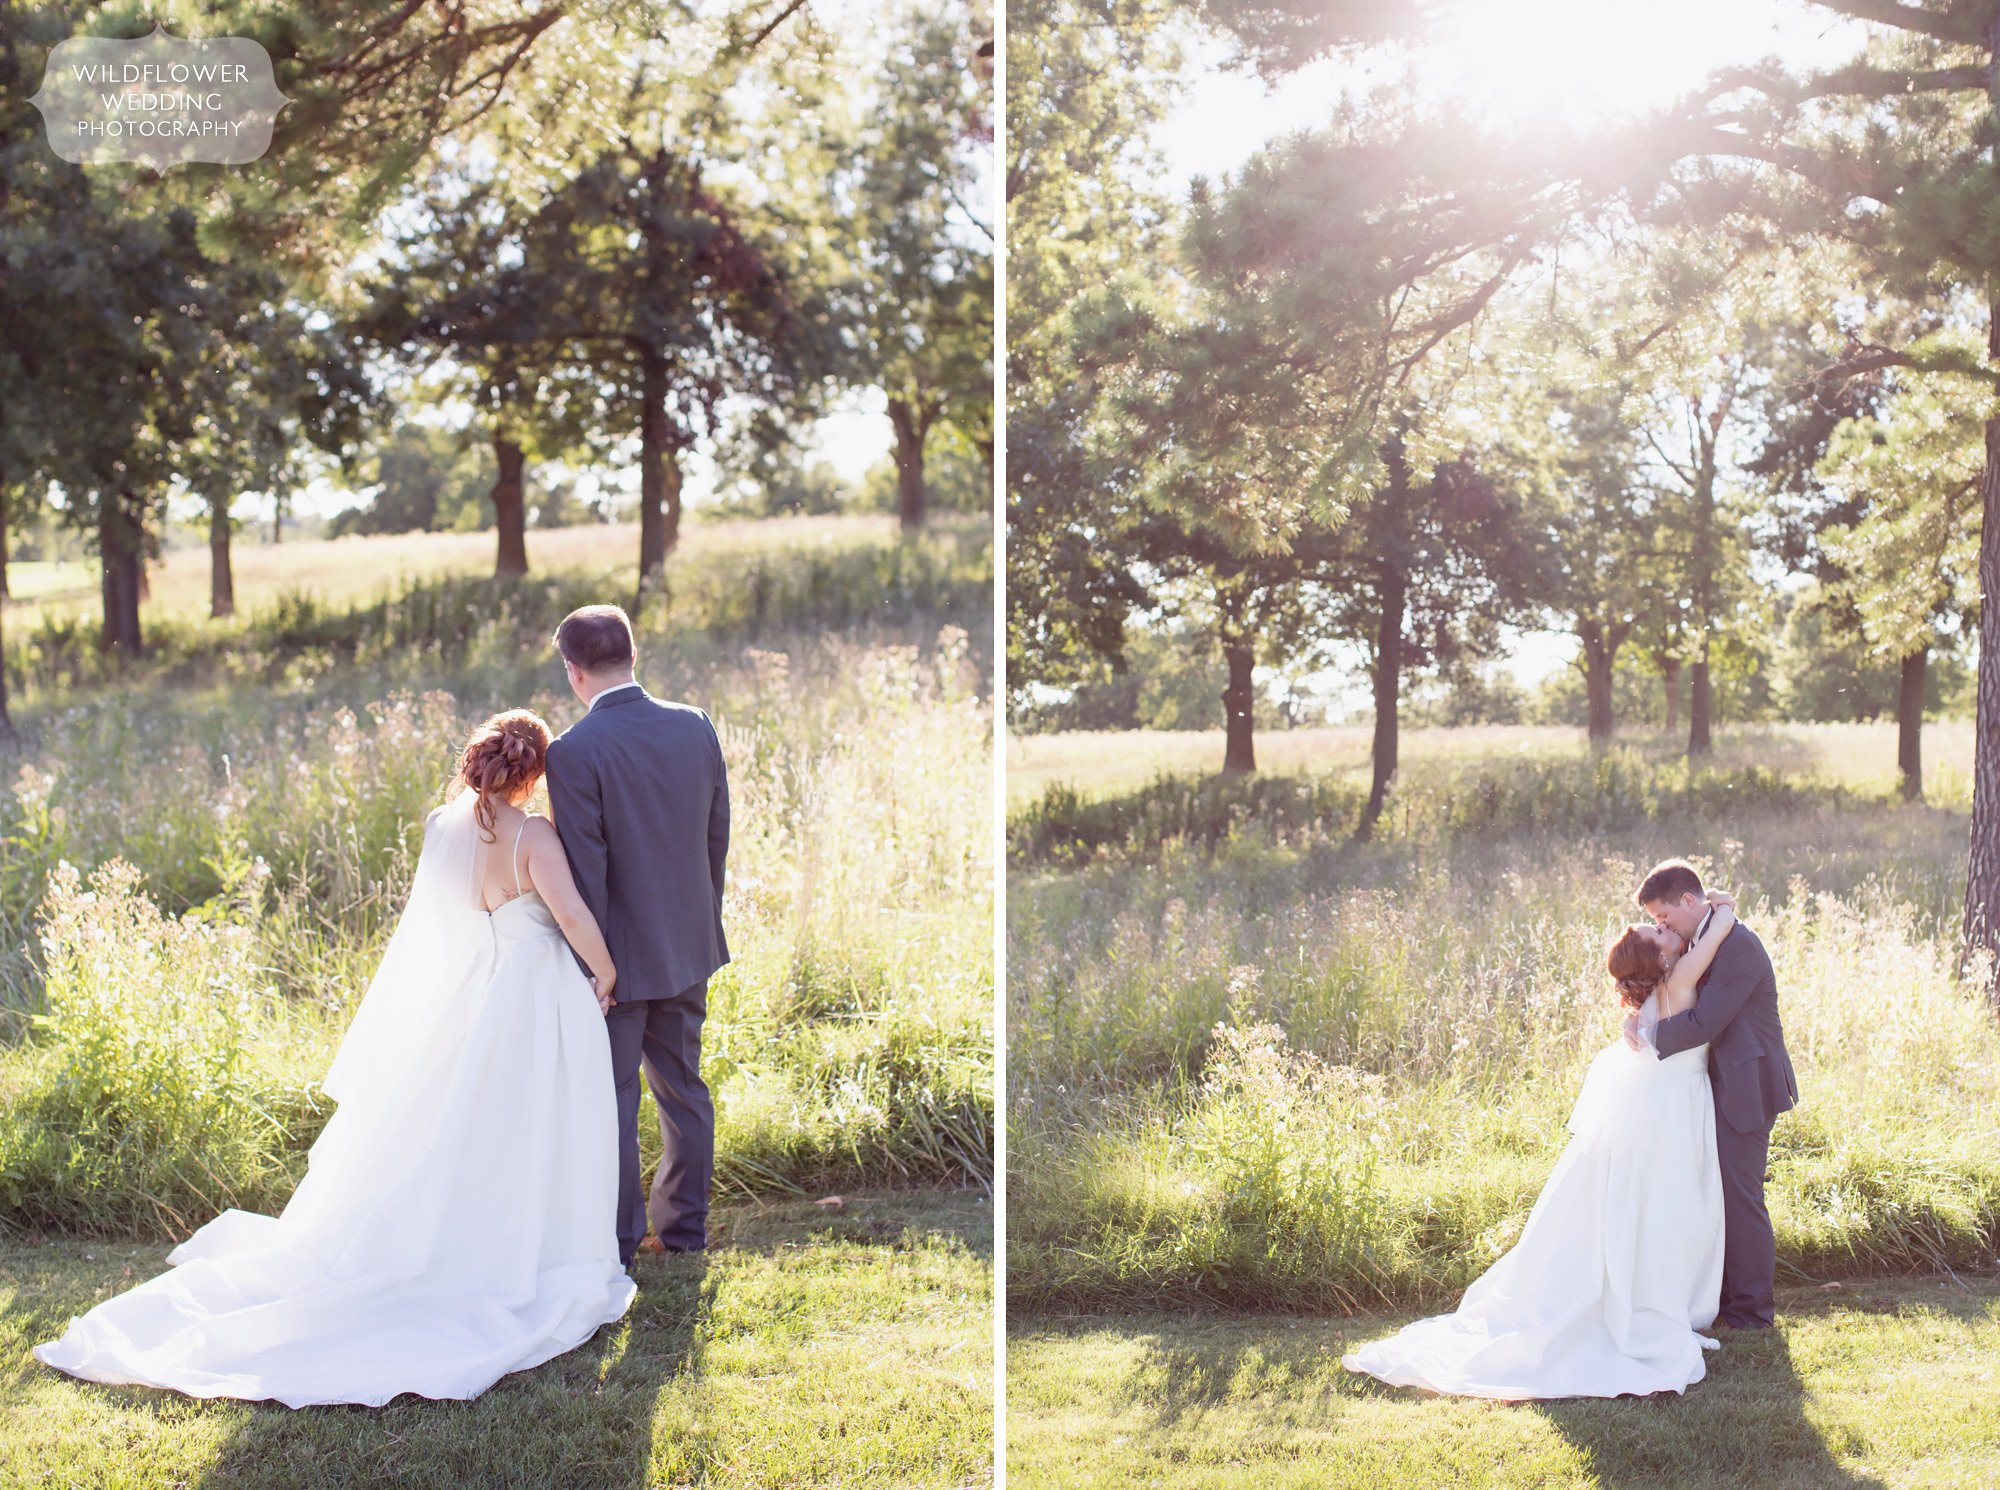 Soft light wedding photography of bride and groom in Jefferson City, MO.